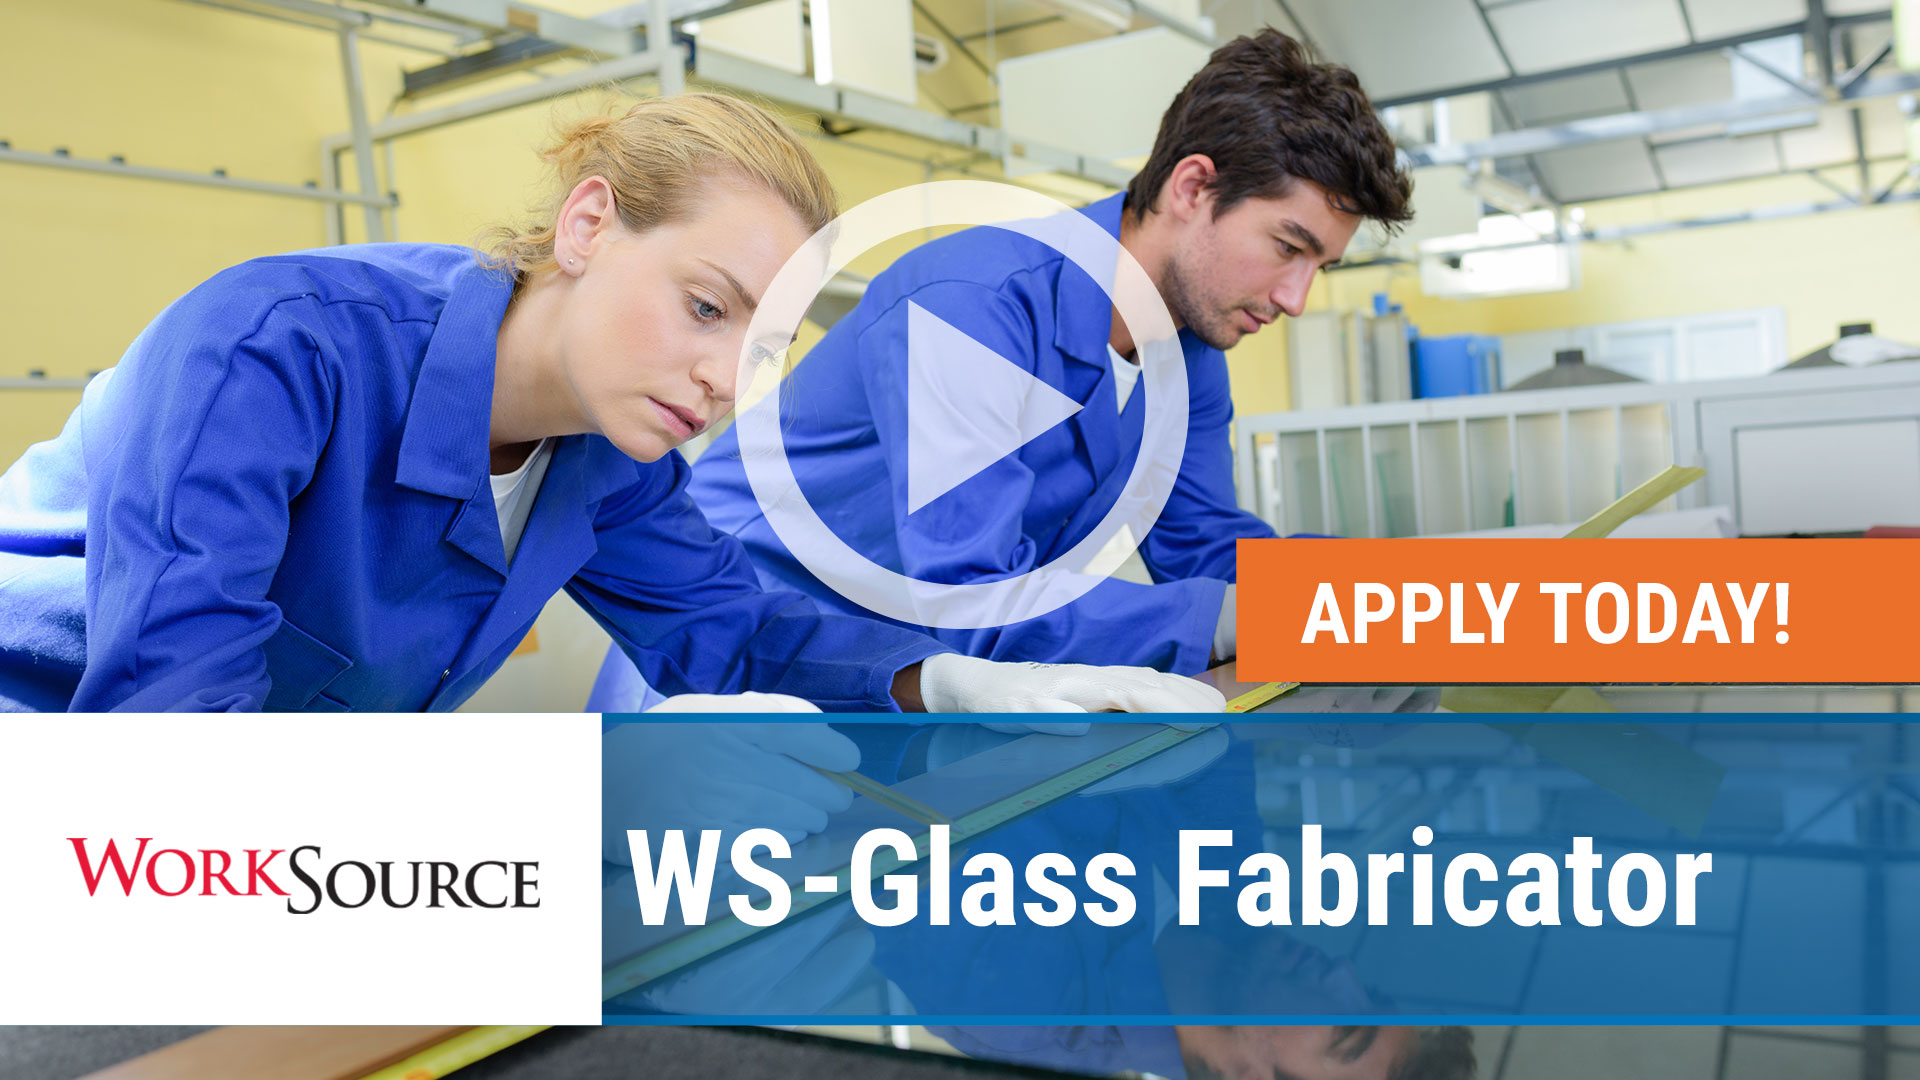 Watch our careers video for available job opening WS Glass Fabricator in Forth Smith,Arkansas. USA